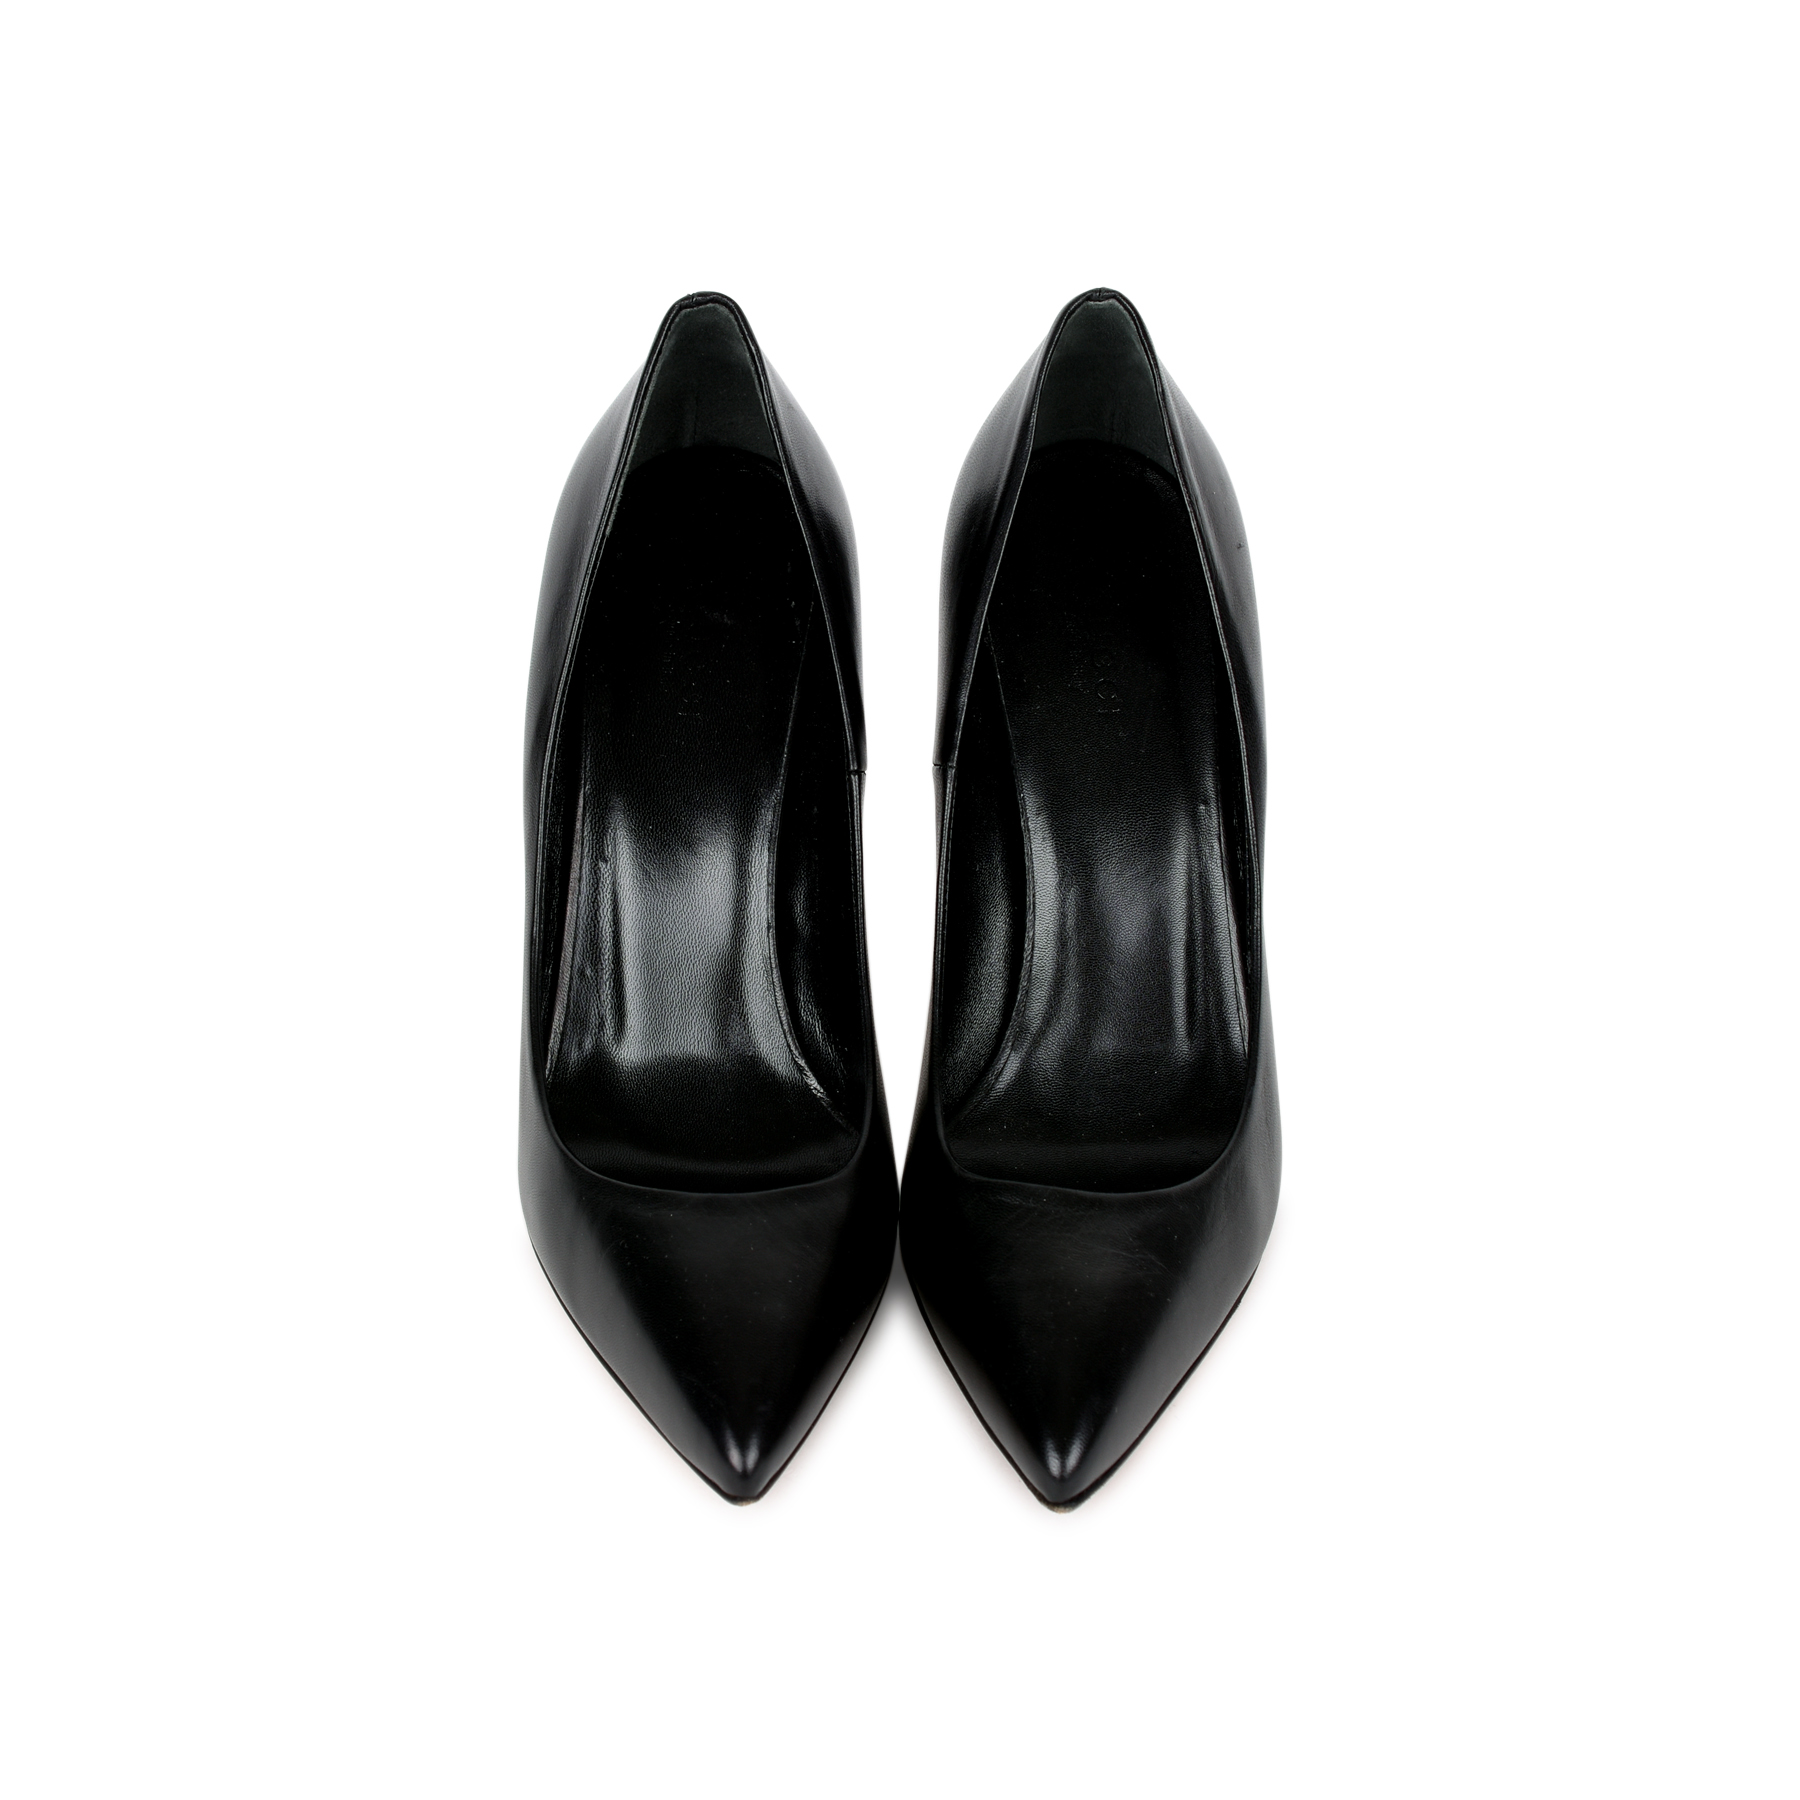 6b7b1a3aaca Authentic Second Hand Gucci Bamboo Heel Pump (PSS-437-00004)